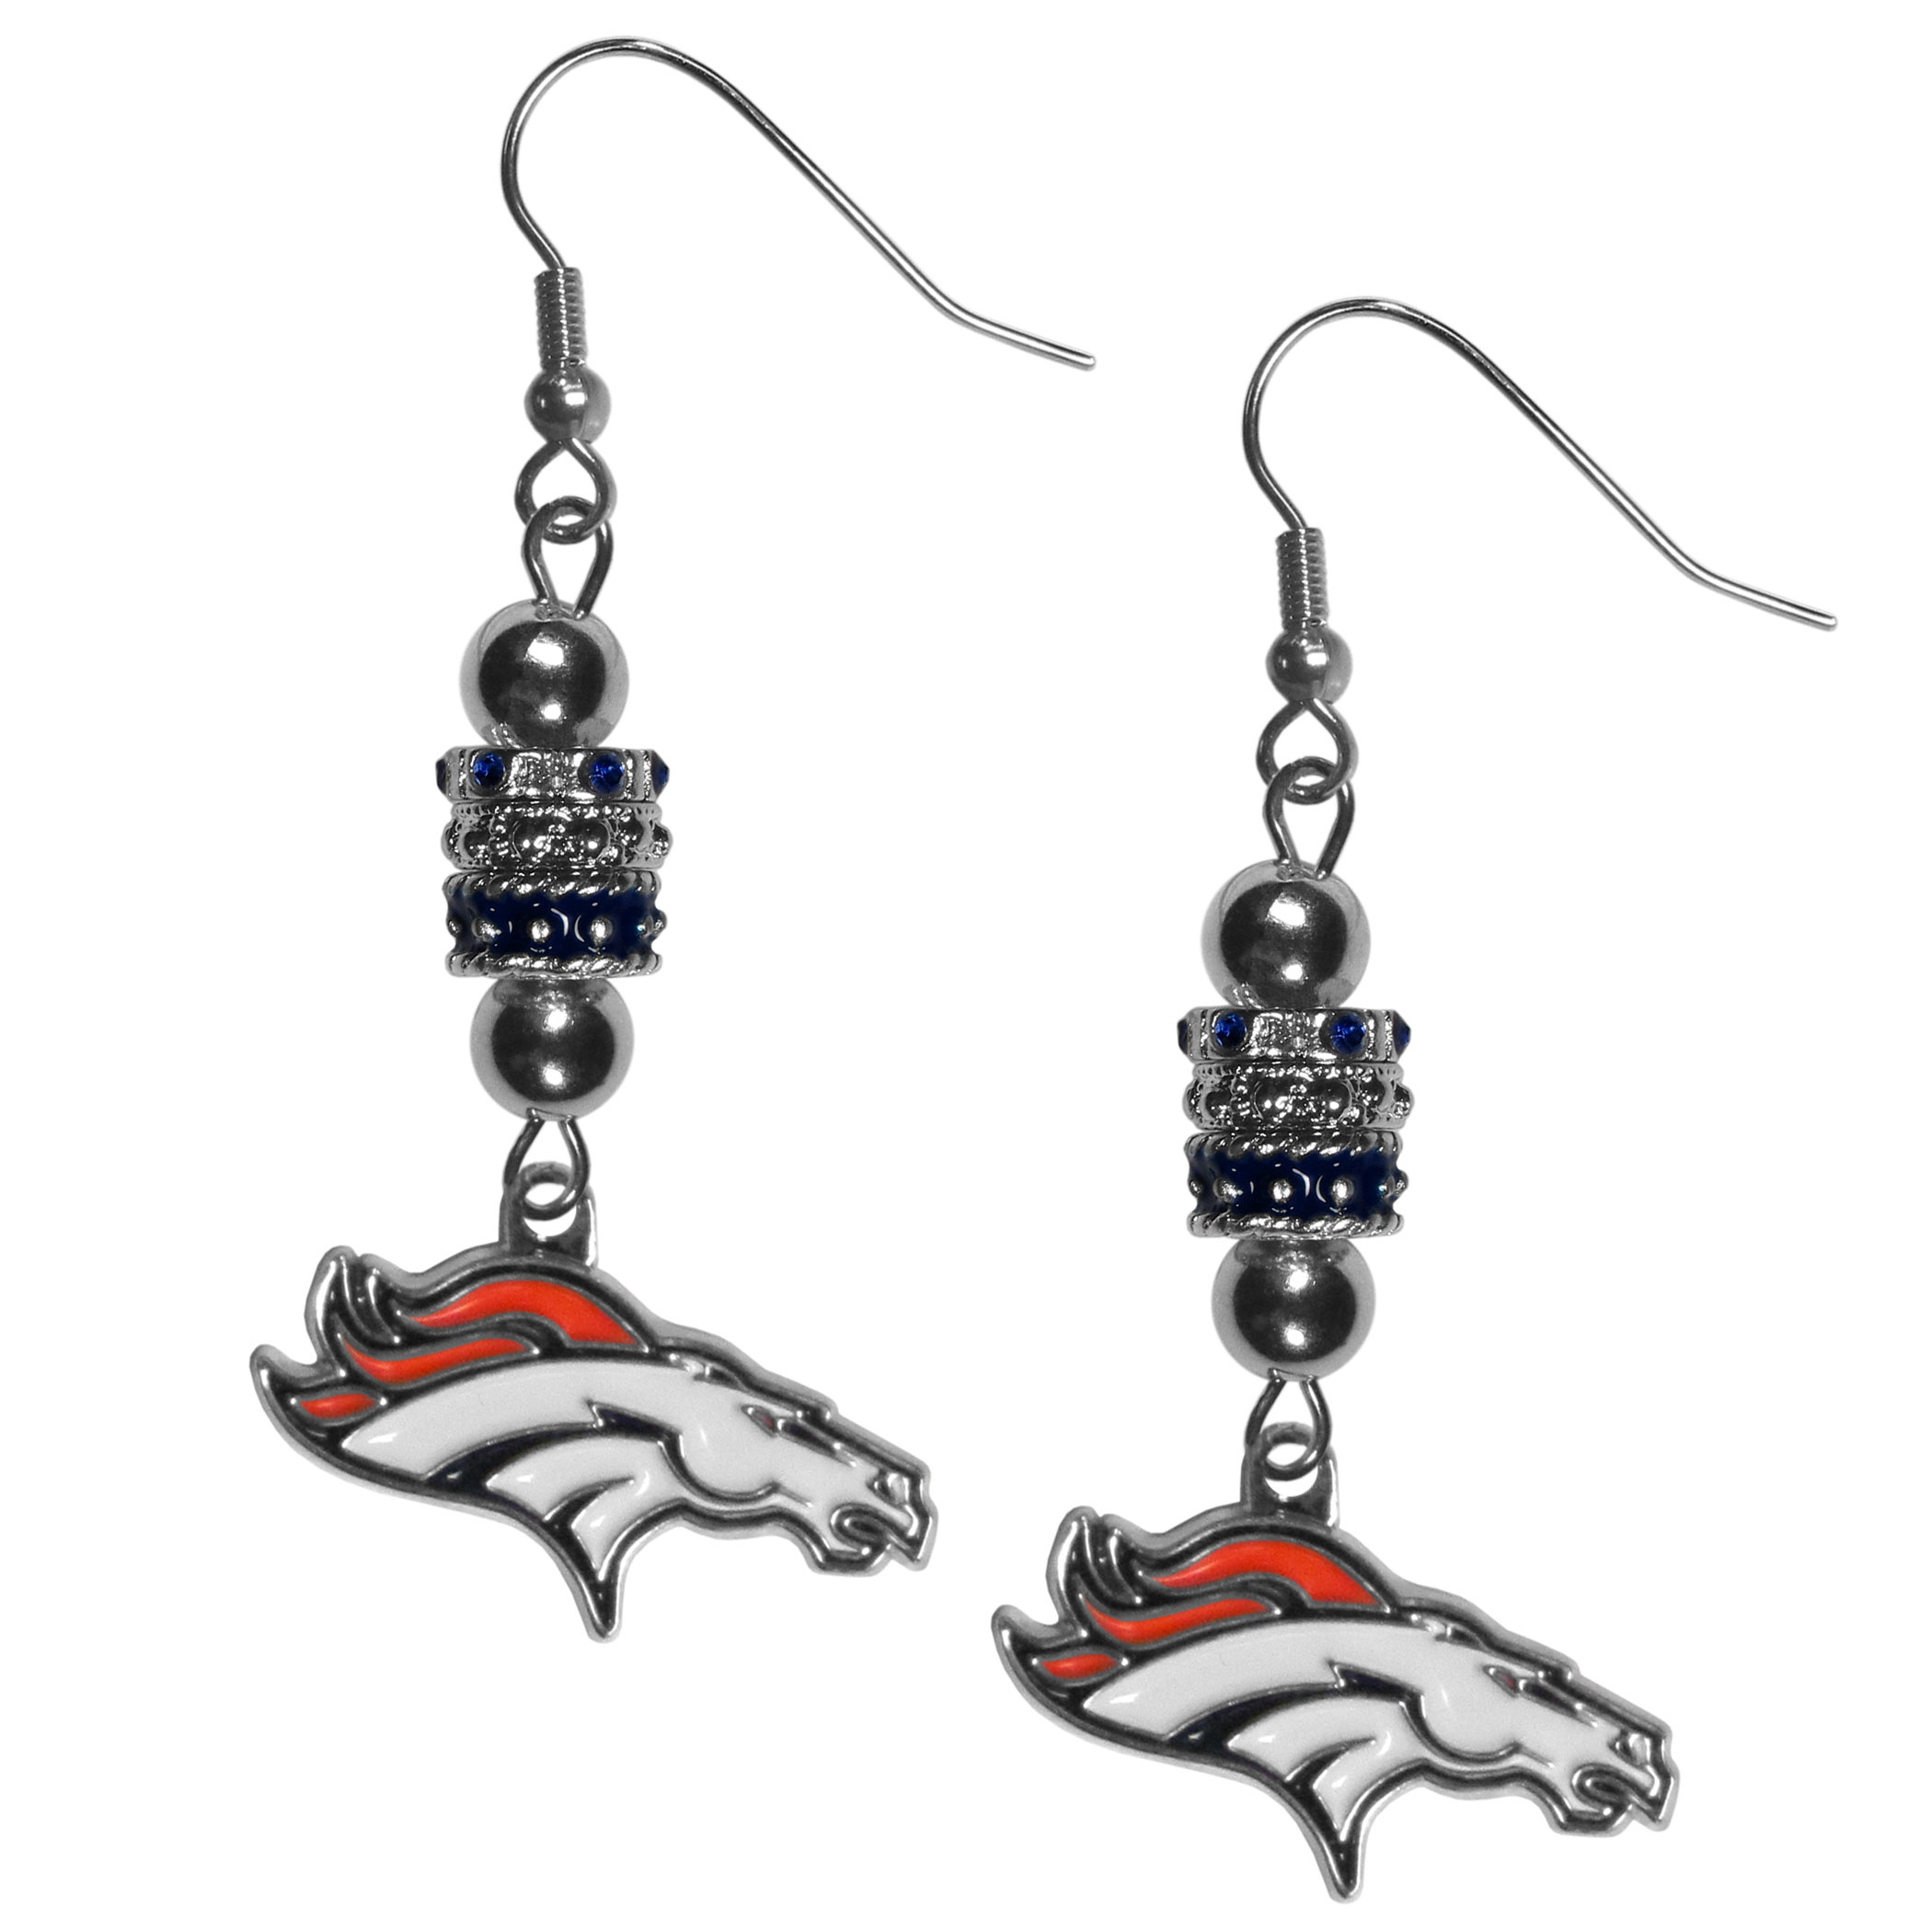 Denver Broncos Euro Bead Earrings - These beautiful euro style earrings feature 3 euro beads and a detailed Denver Broncos charm on hypoallergenic fishhook posts.